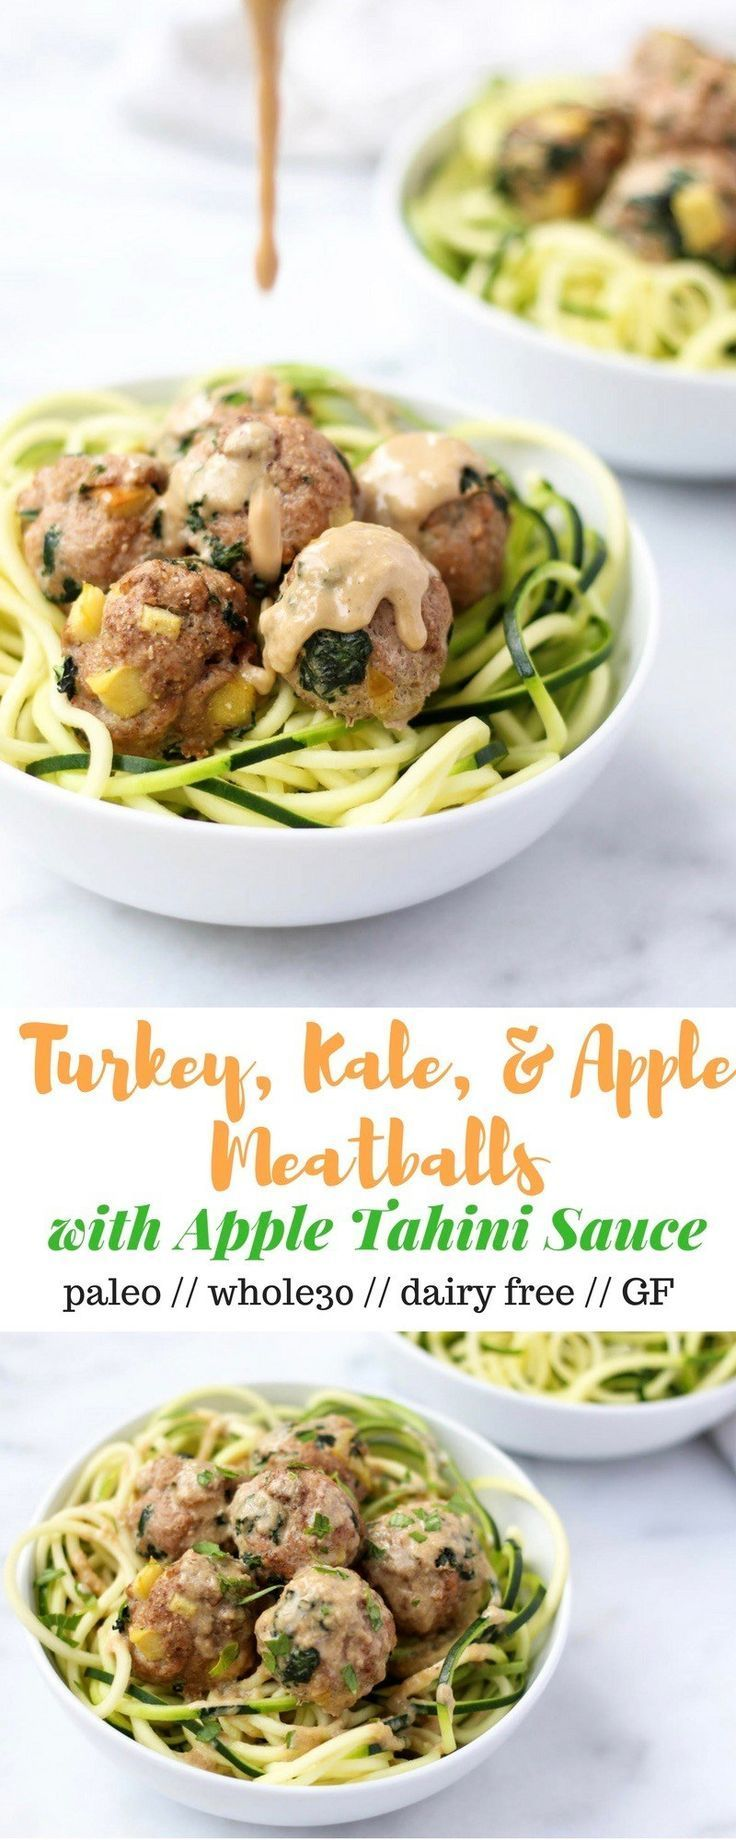 Protein, veggies, and fruit packed, theseTurkey, Kale, & Apple Meatballs come together in less than 30 minutes and are paleo, gluten free, and Whole30 compliant! - Eat the Gains